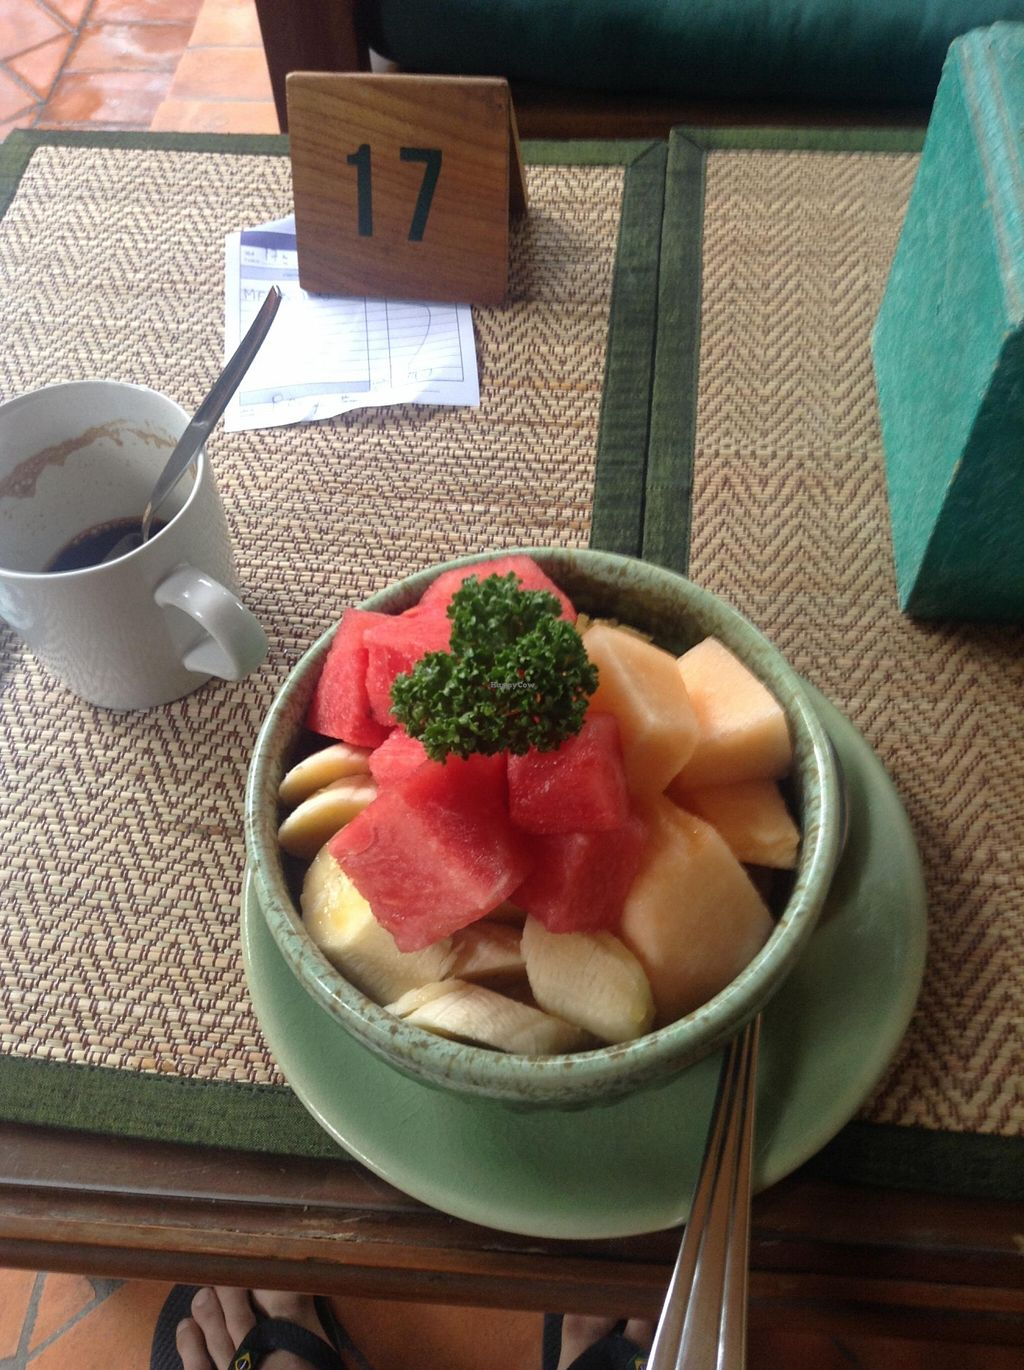 """Photo of Green Tiger House  by <a href=""""/members/profile/YozzyOti"""">YozzyOti</a> <br/>Museli with seasonal fruits (rice milk)  you have to ask for the vegan option <br/> September 18, 2015  - <a href='/contact/abuse/image/46701/118255'>Report</a>"""